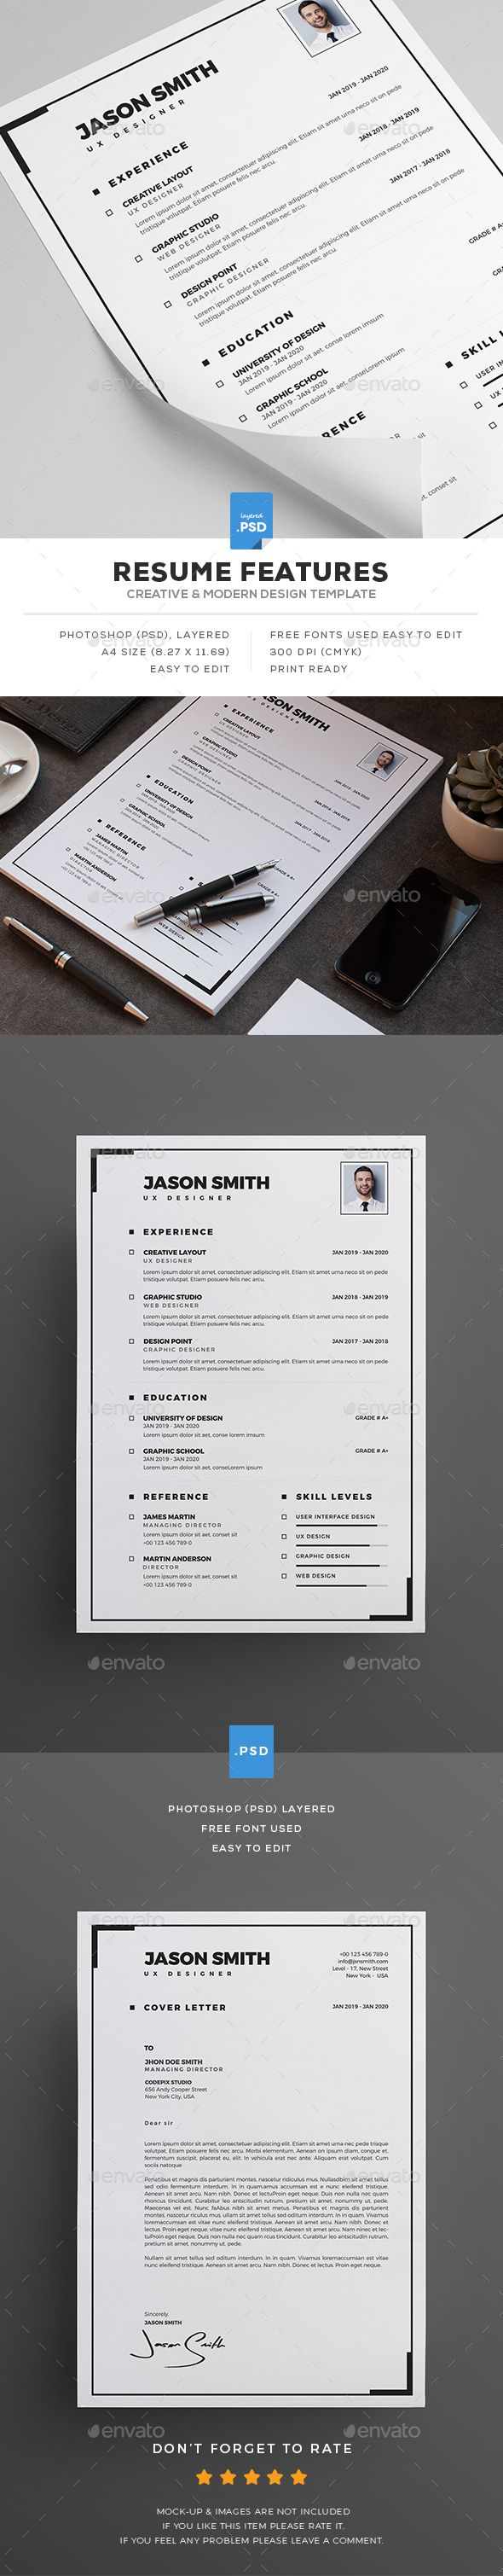 Resume Cv Templates Free Download%0A finance intern resume